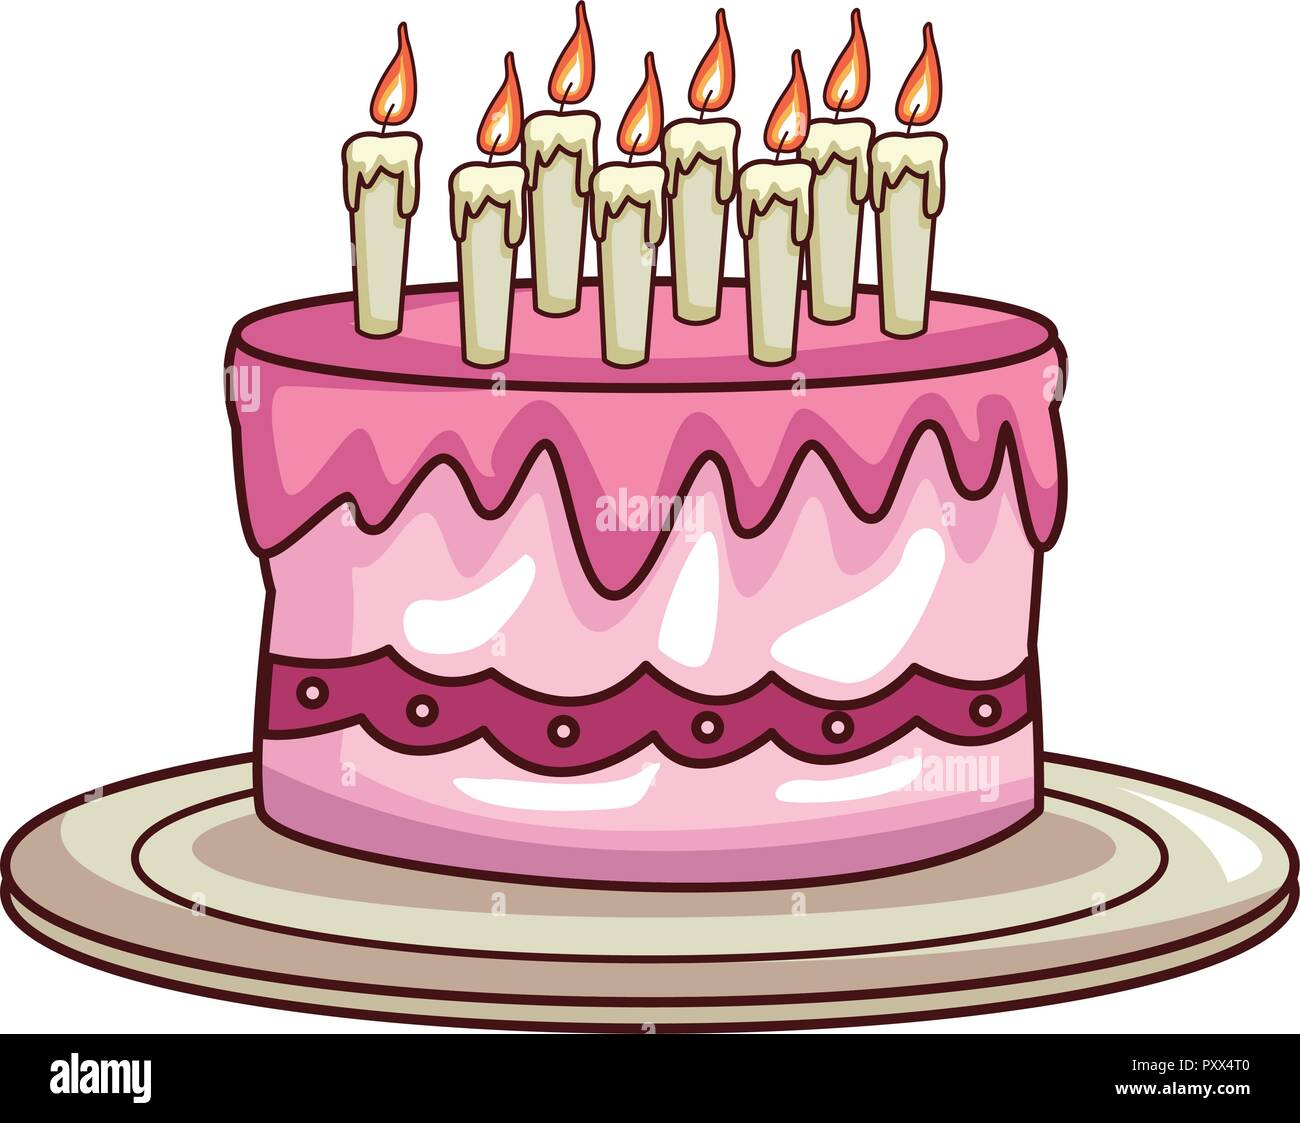 Birthday Cake Cartoon Stock Vector Image Art Alamy